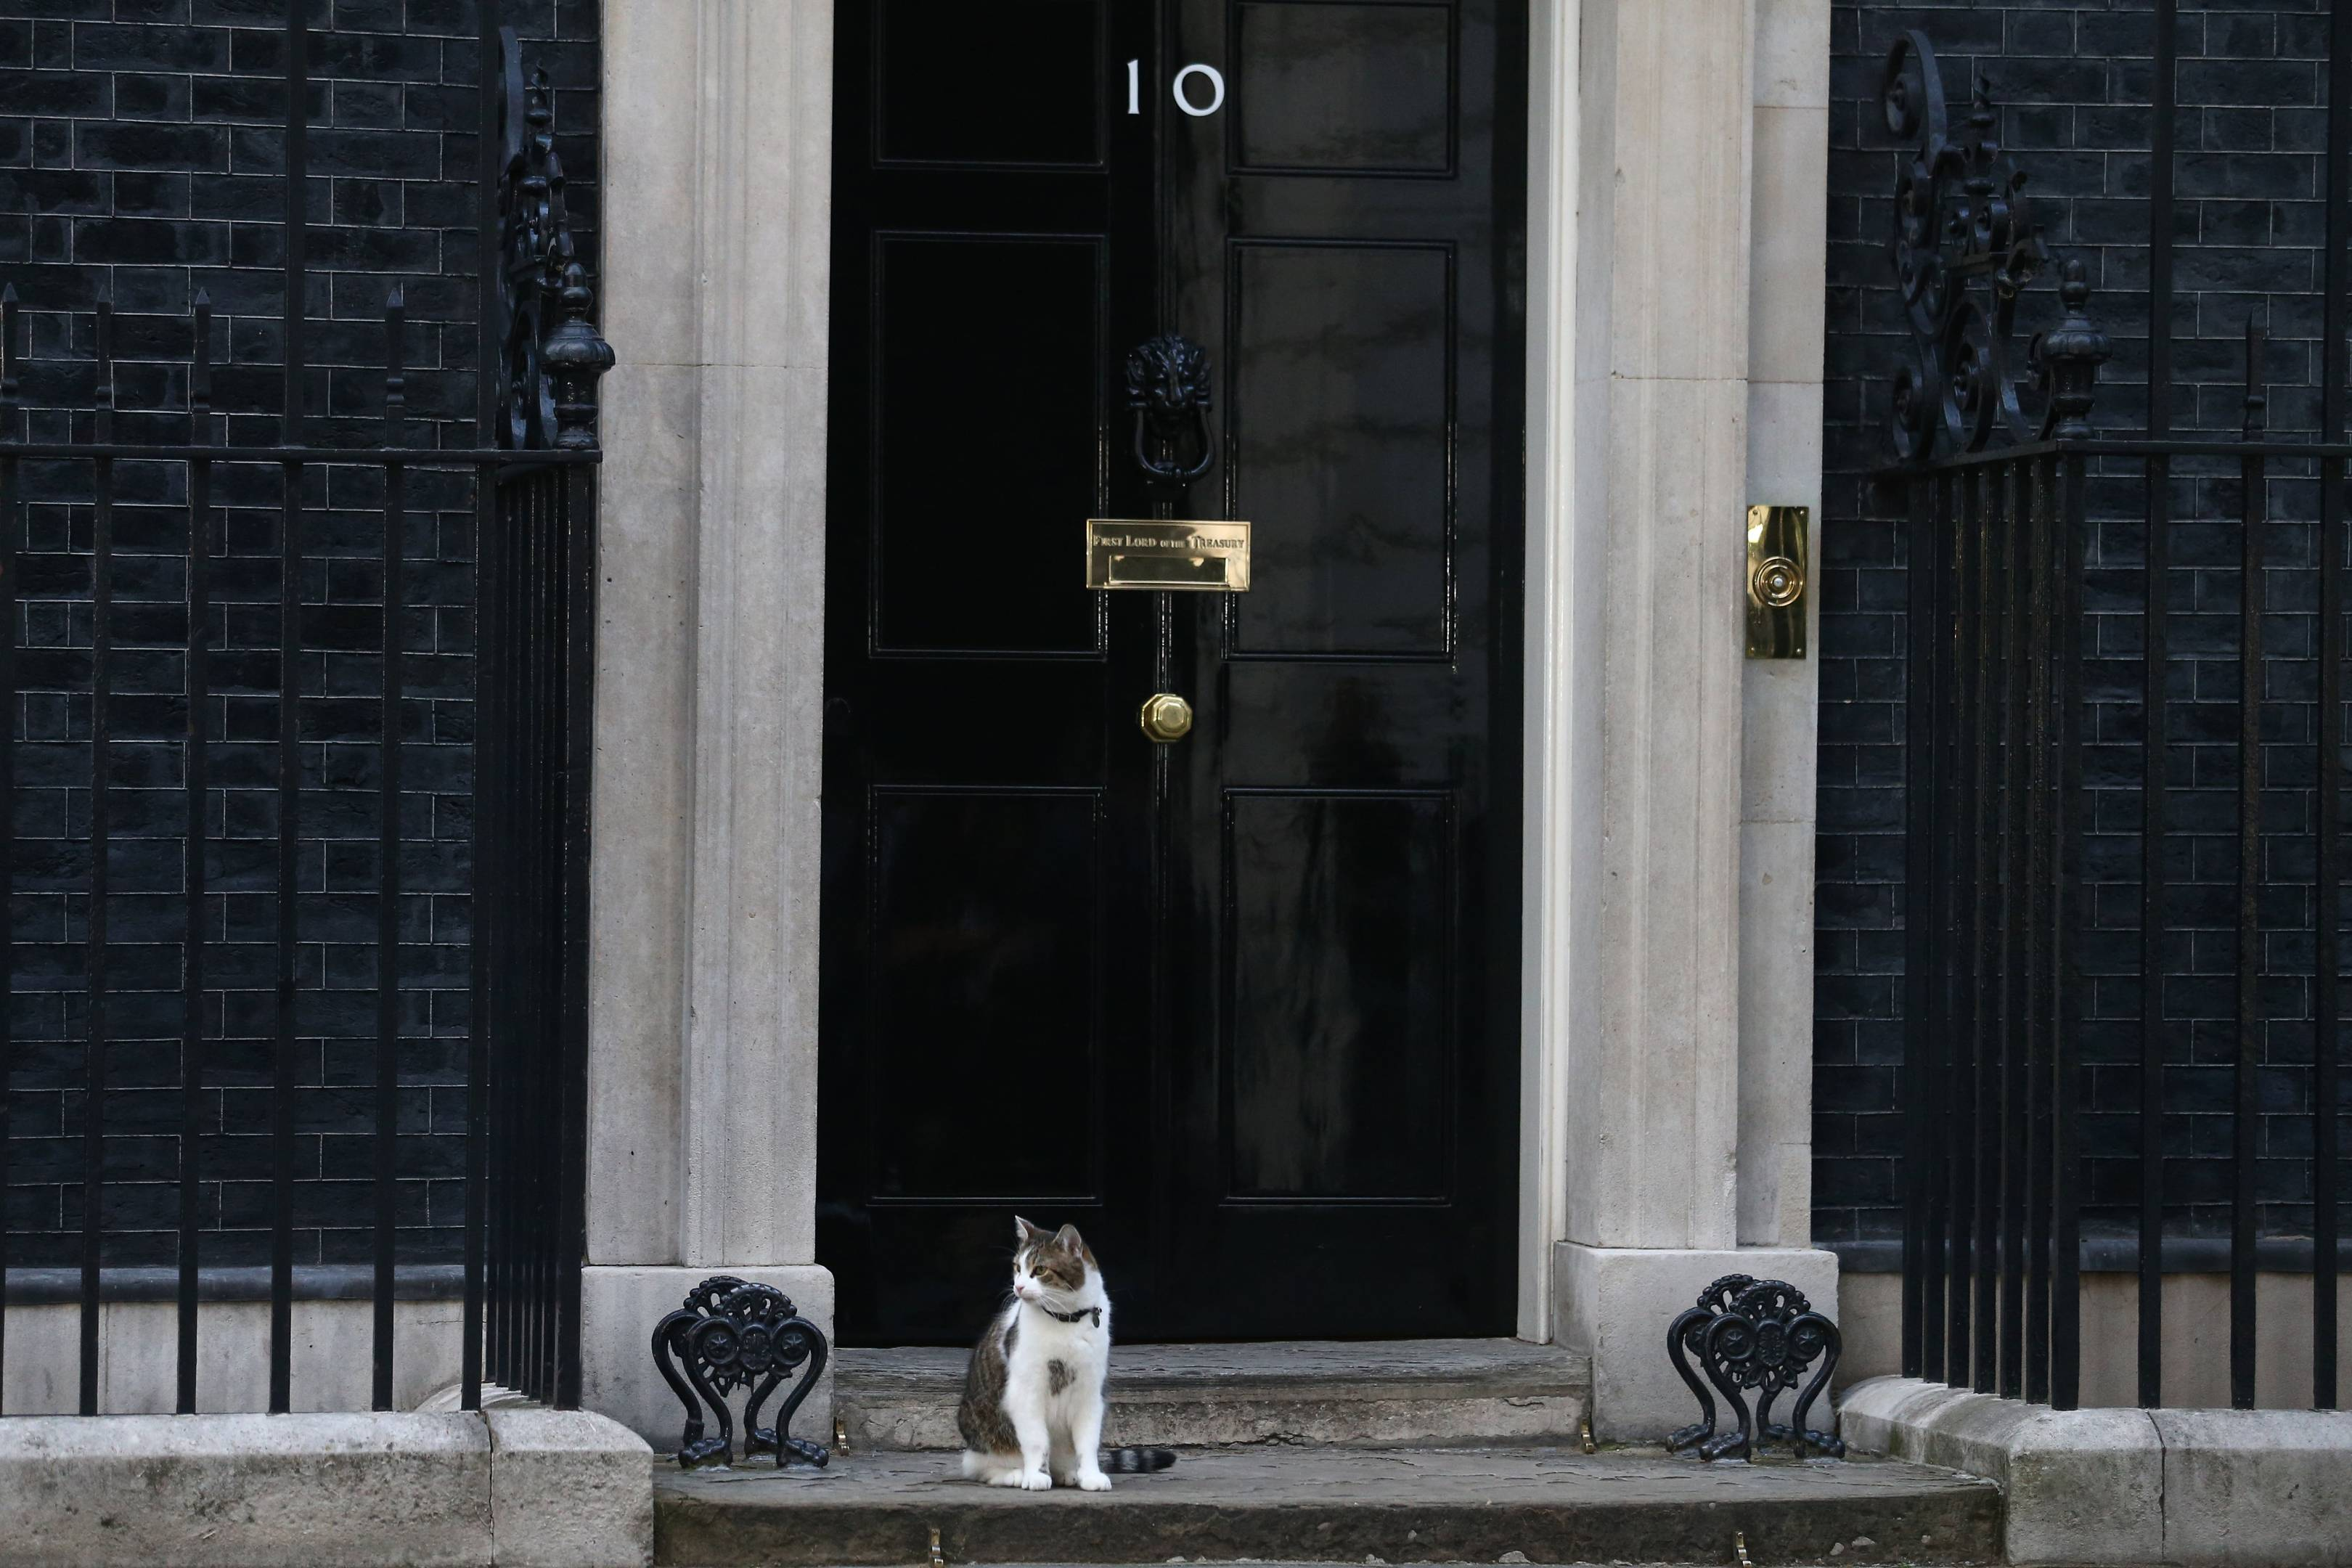 10 Downing Street is now available on Google Street View | WIRED UK